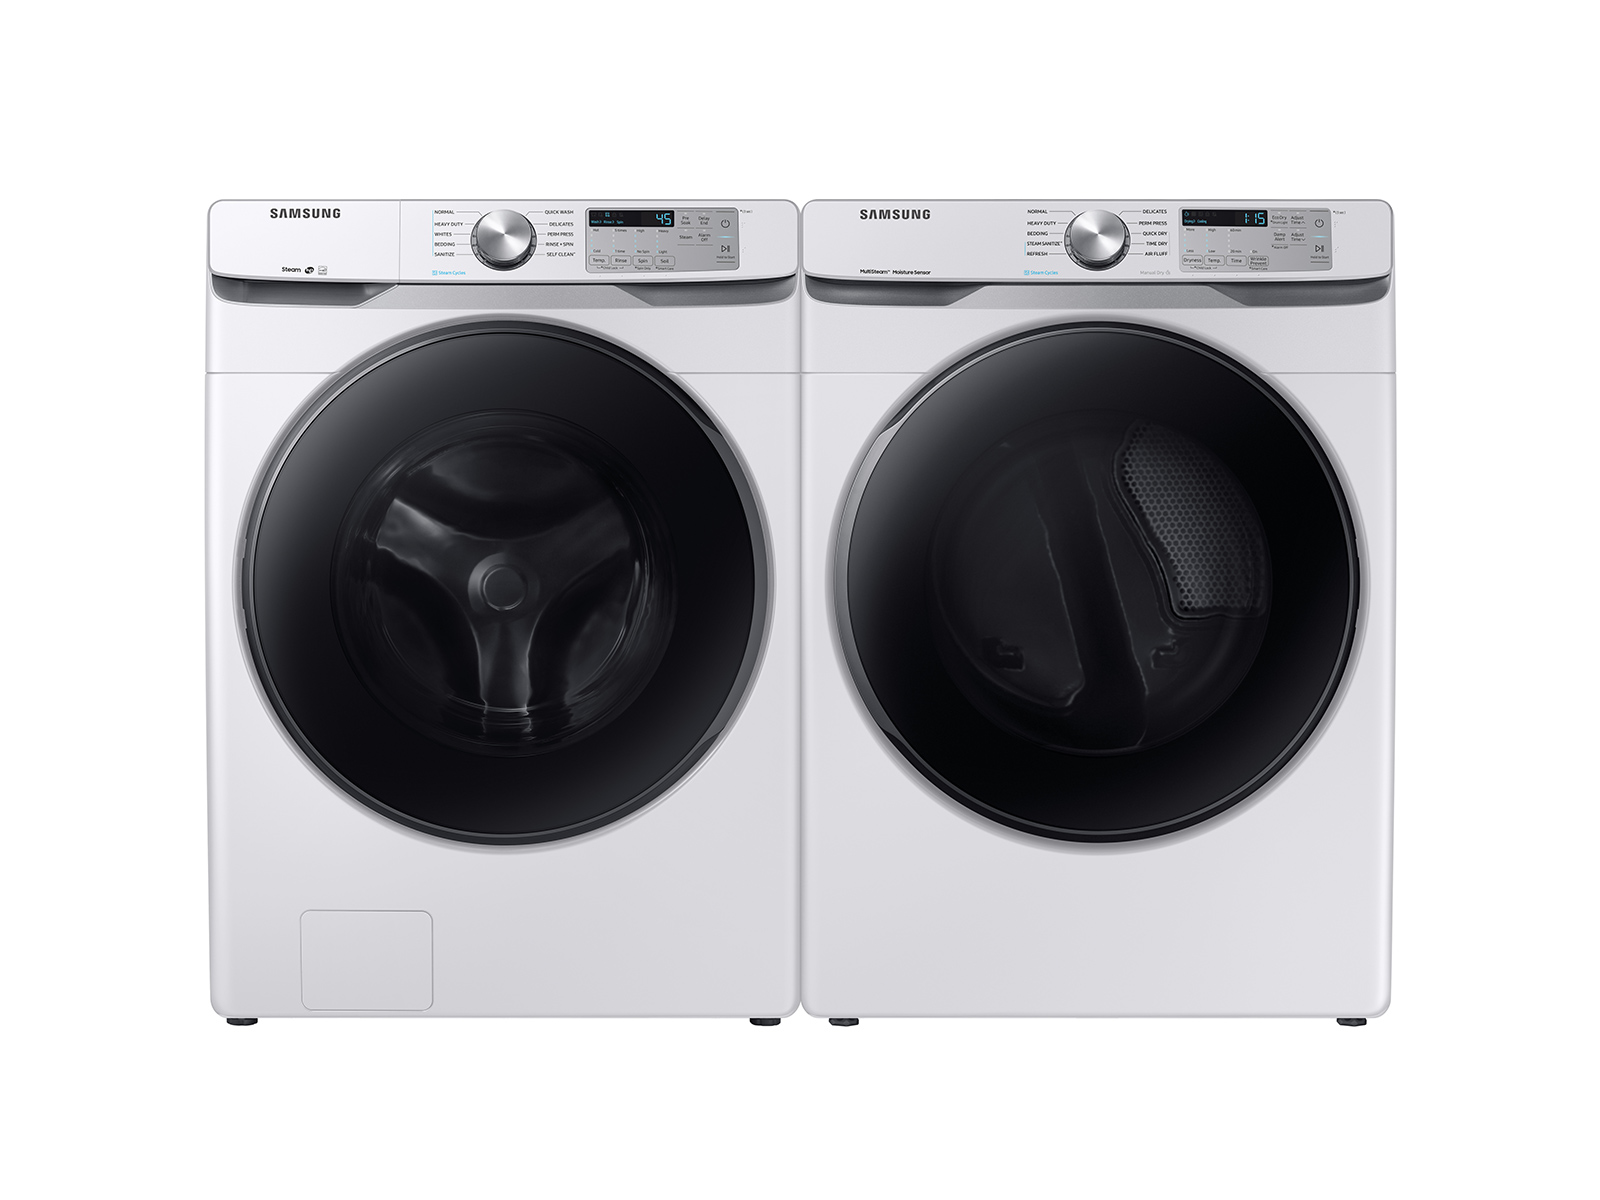 Samsung Front Load Washer & Dryer set with Steam in White - Laundry Washing Machine